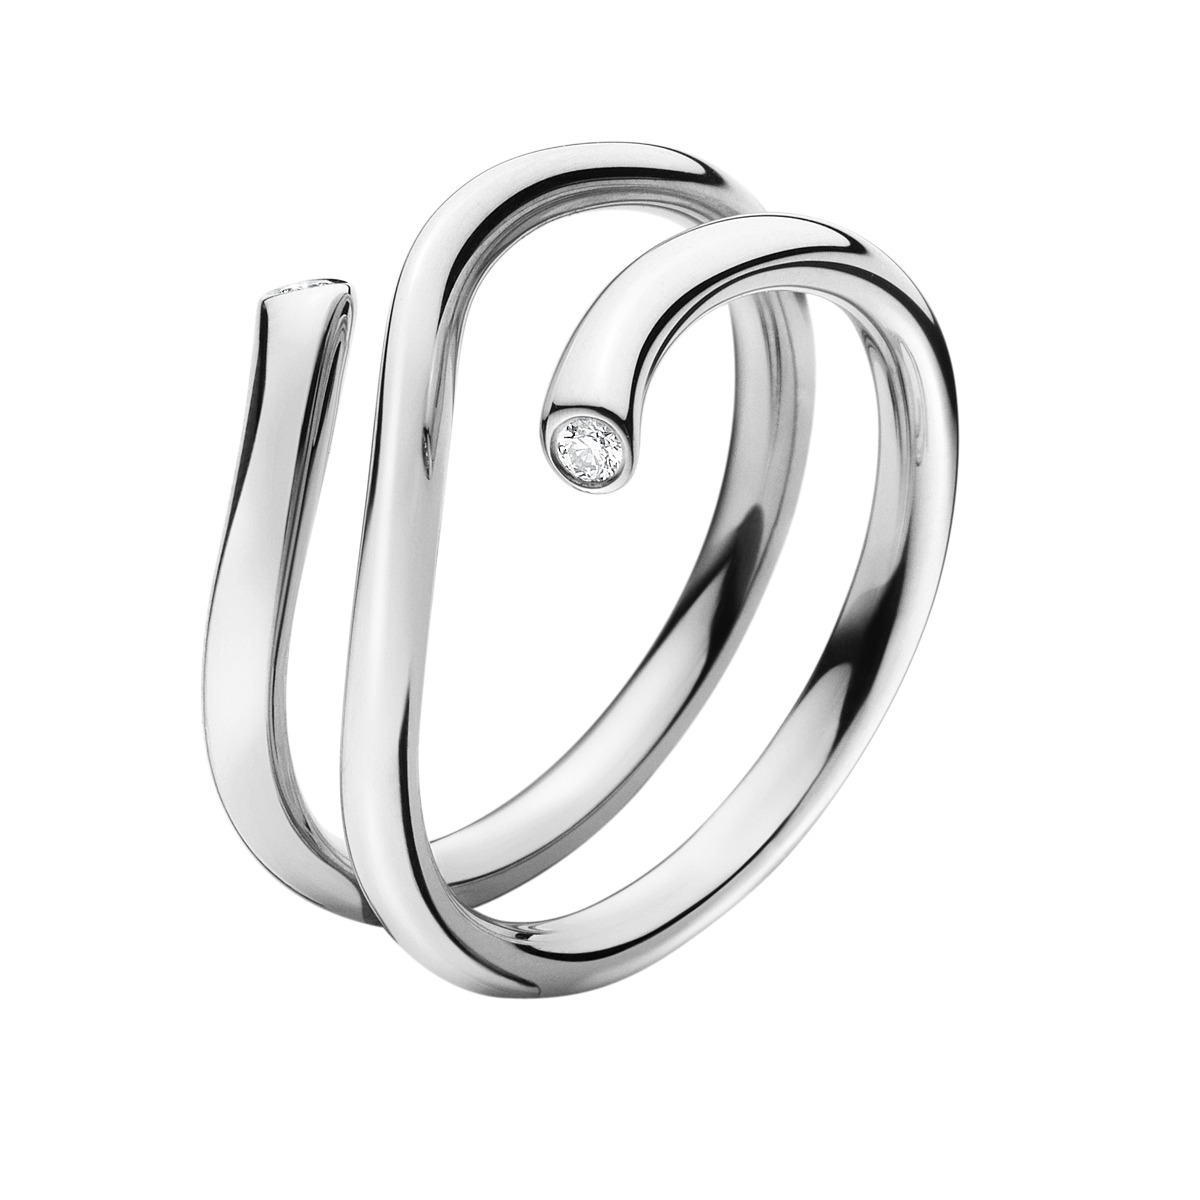 Image of   Georg Jensen MAGIC ring - 3569760 Størrelse 53